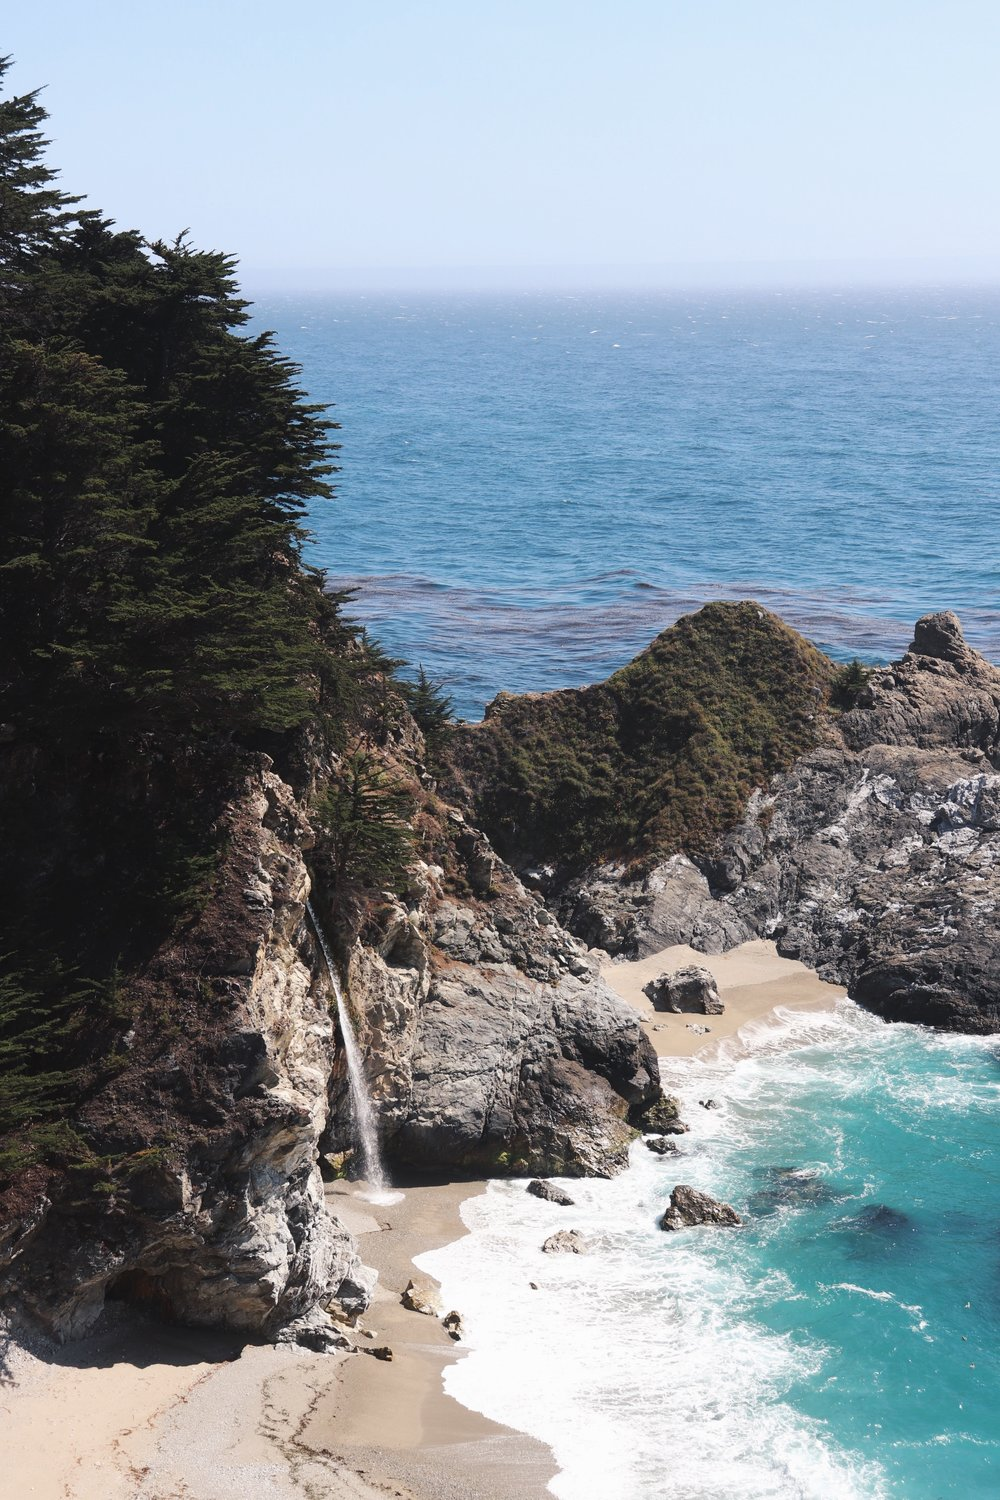 CA-1 - Do I have to explain why NorCal Highway 1 is the BEST drive in California? You've seen posters of it before- Julia Pfeiffer Burns State Park's McWay Falls- another one of God's glorious mystery that leaves me speechless. Old Bixby, and California's golden coast are other reasons why the CA-1 is the perfect drive for lovers and dreamers.Tip - Make sure to grab a drank or some yummy eats at Cafe Kevah in Big Sur for breathtaking views .